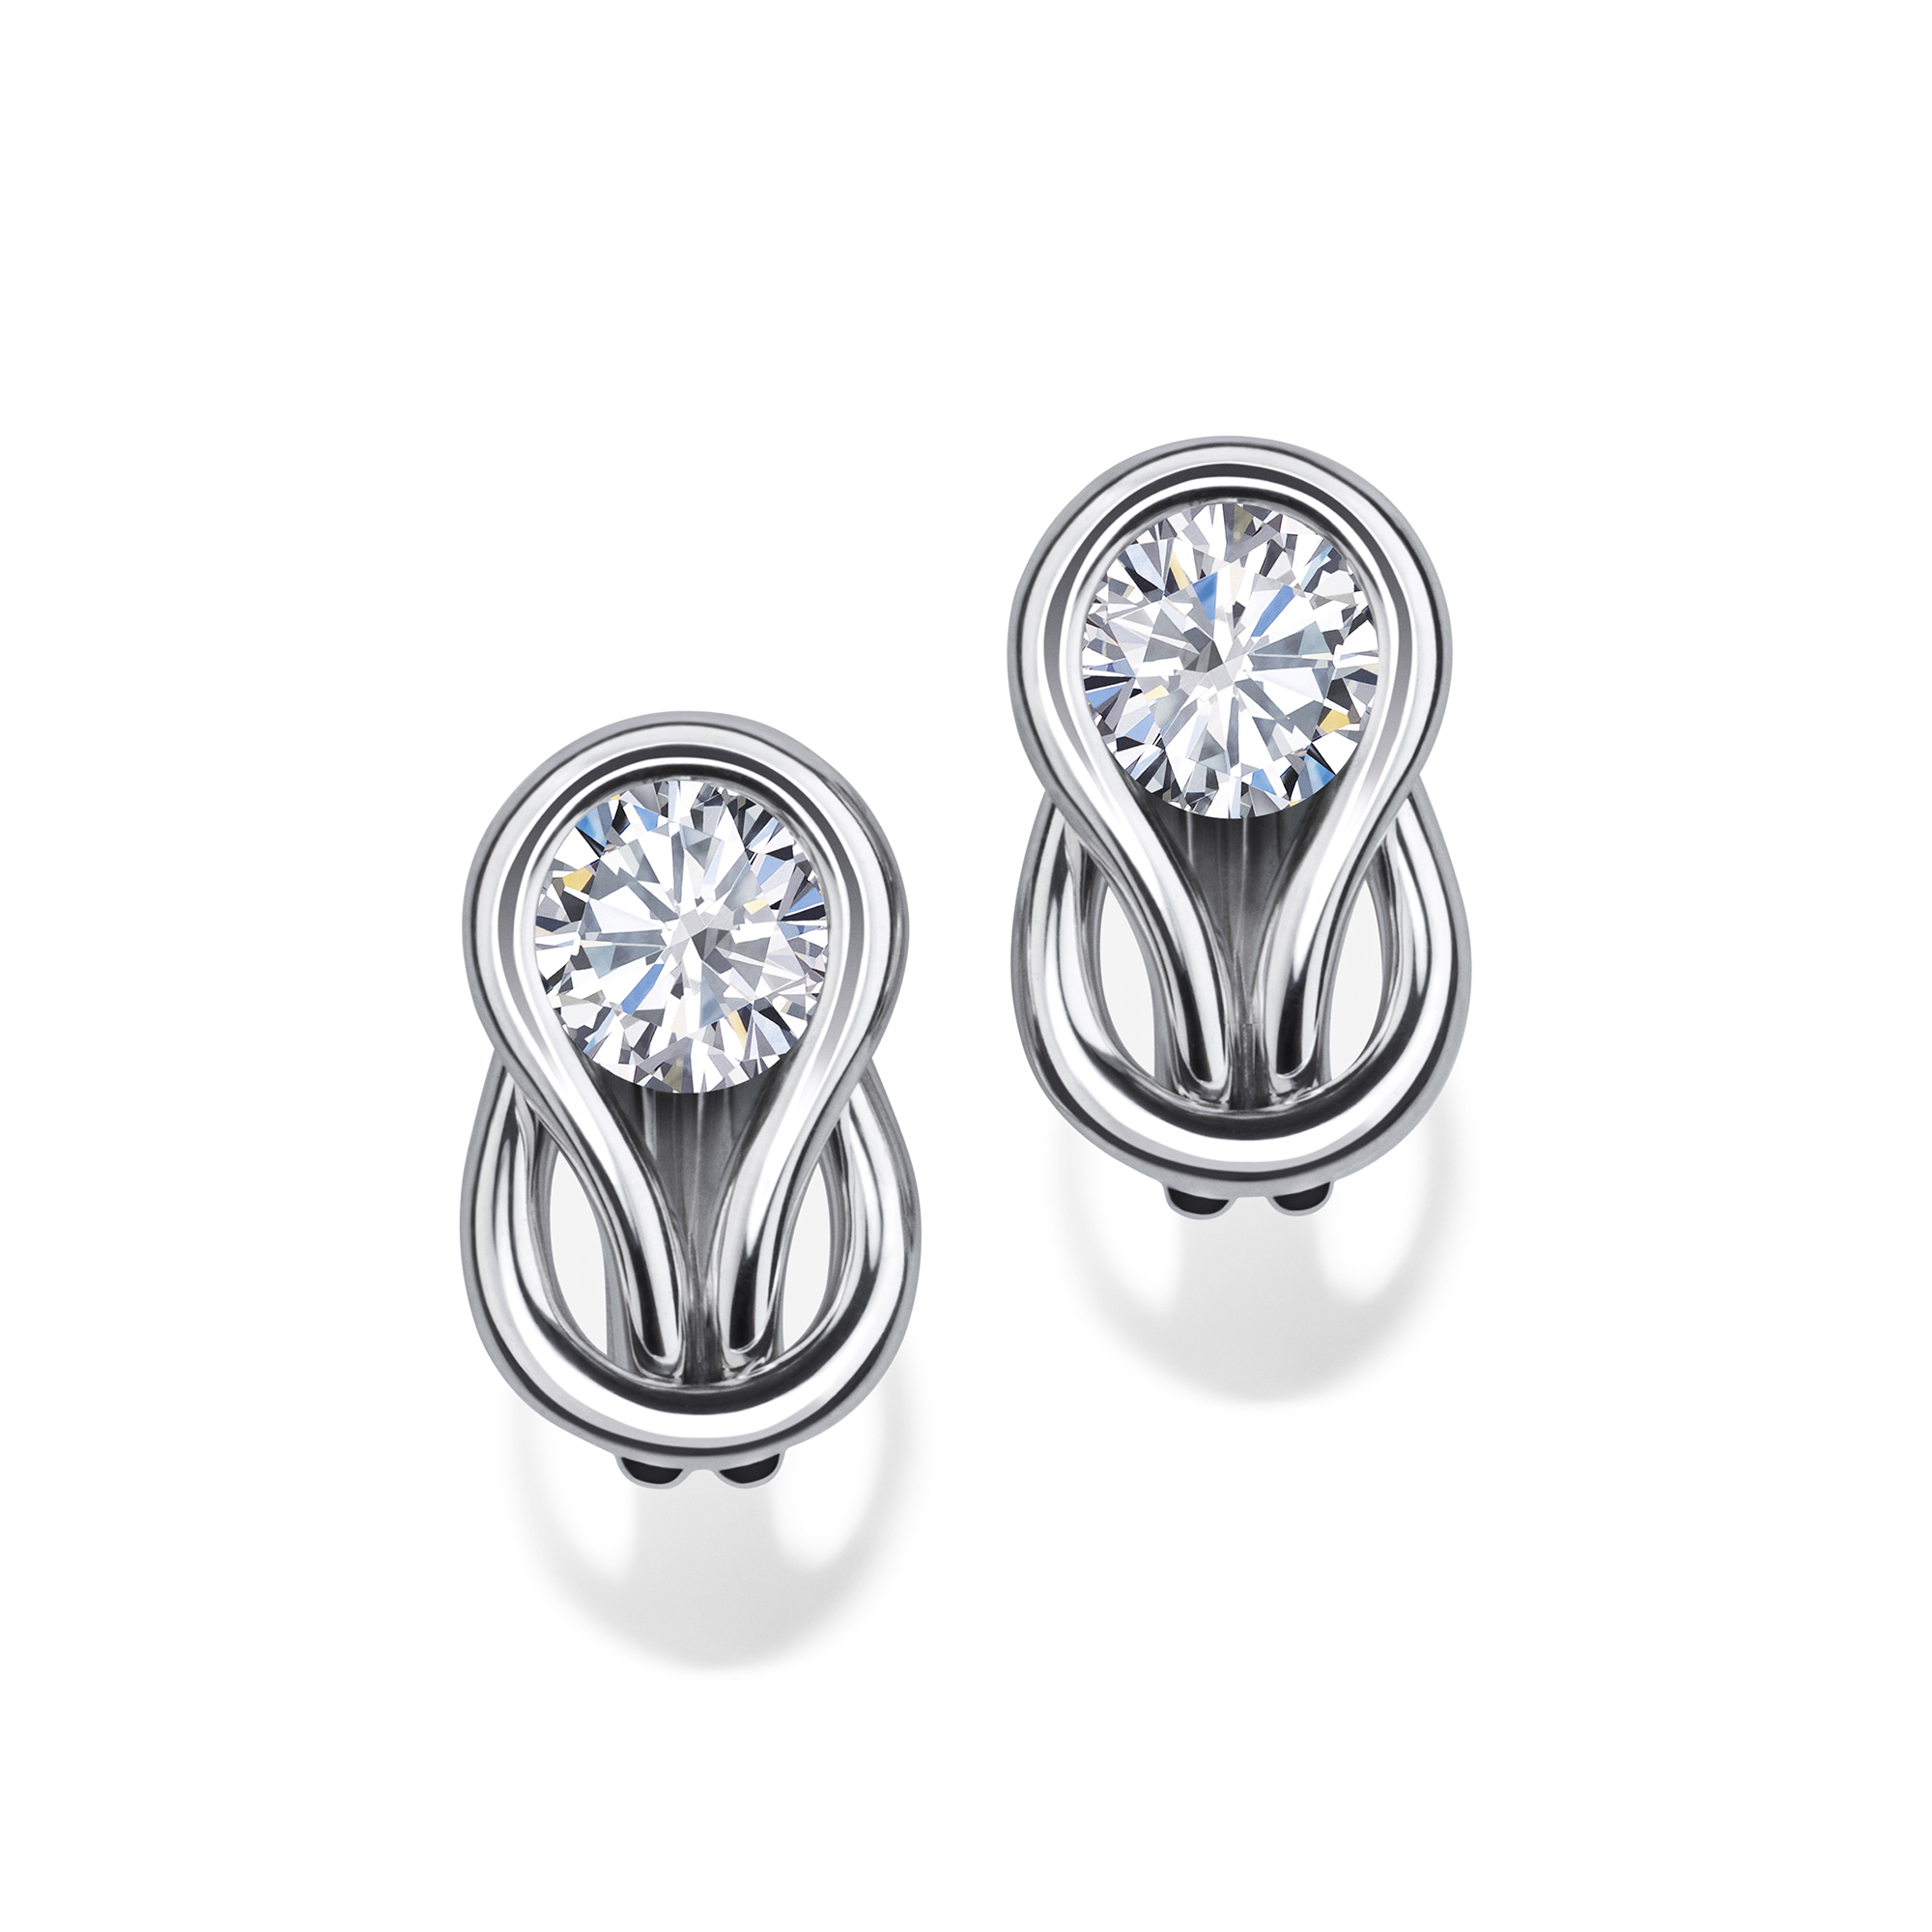 earrings forming diamond brilliant solitaire pin a these stunning include studs central ear by cut diamonds surrounded smaller